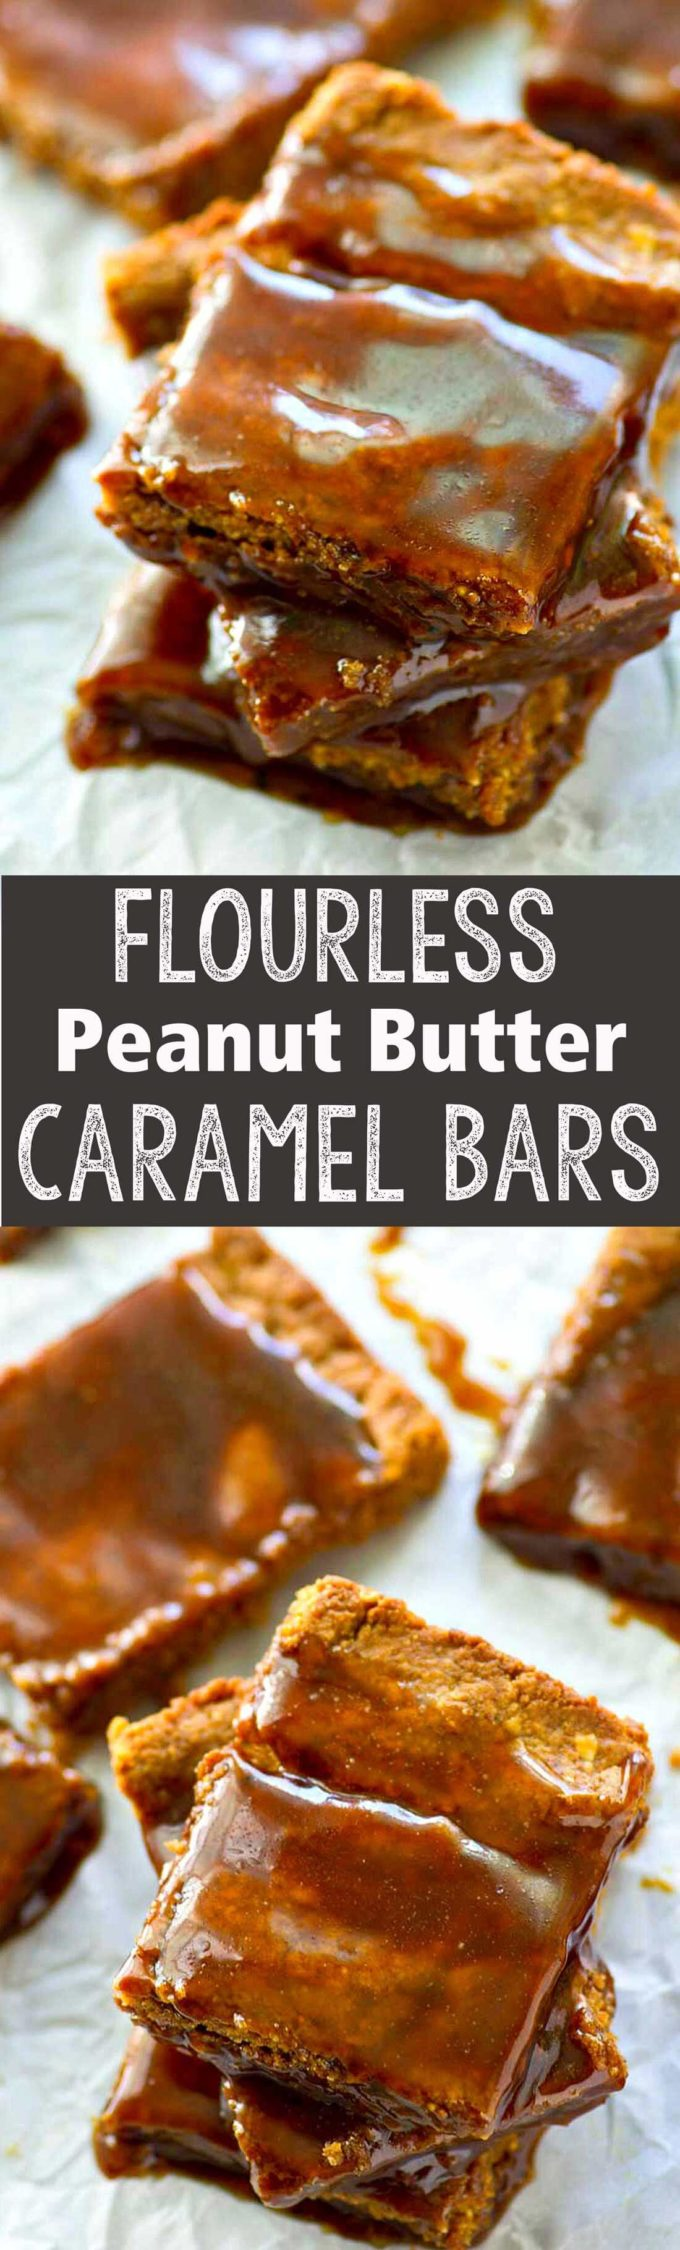 Flourless peanut butter caramel bars are the best tasting dessert ever!